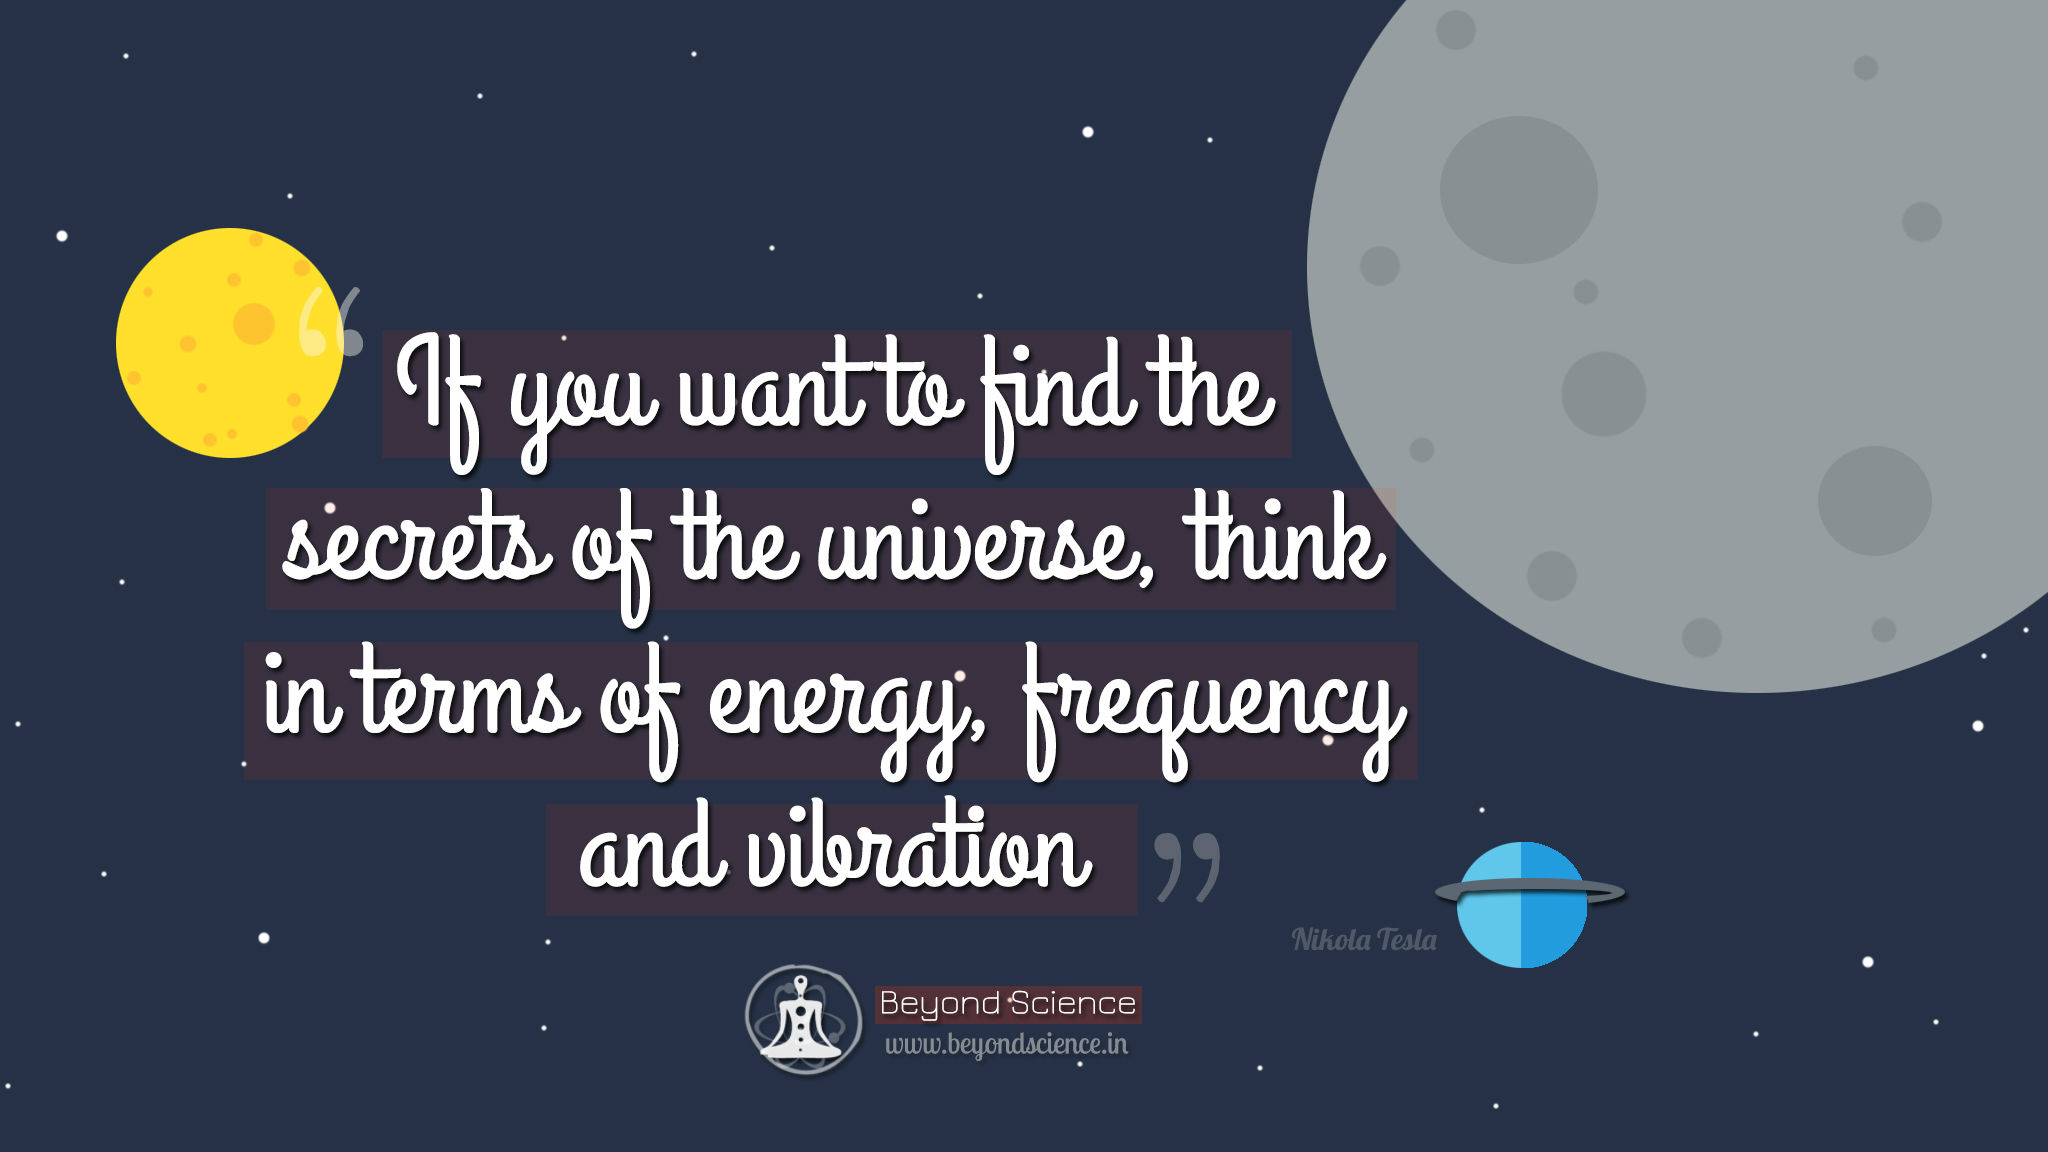 frequency and vibration quotes